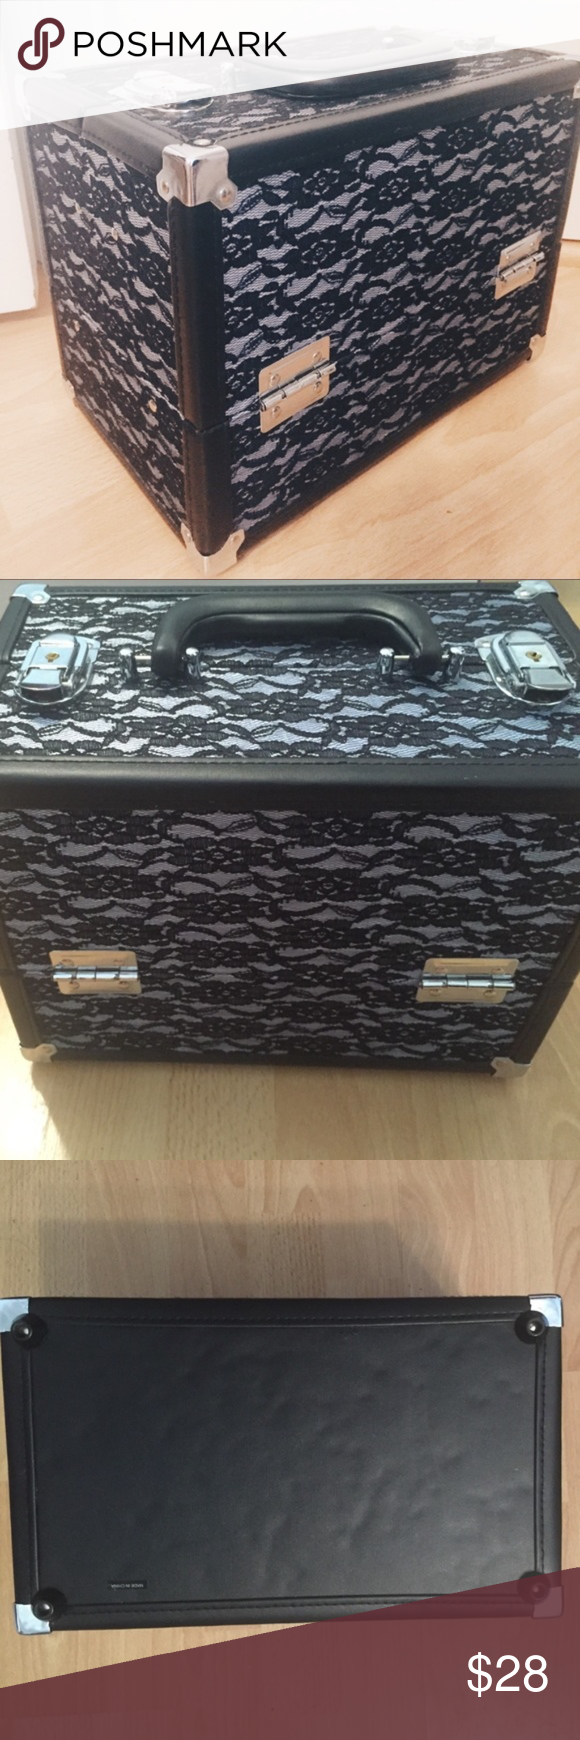 a7597cf45b Makeup Caboodle Rockstar Grande Cosmetic Case This used fashion-print  organizer features 1 large interior